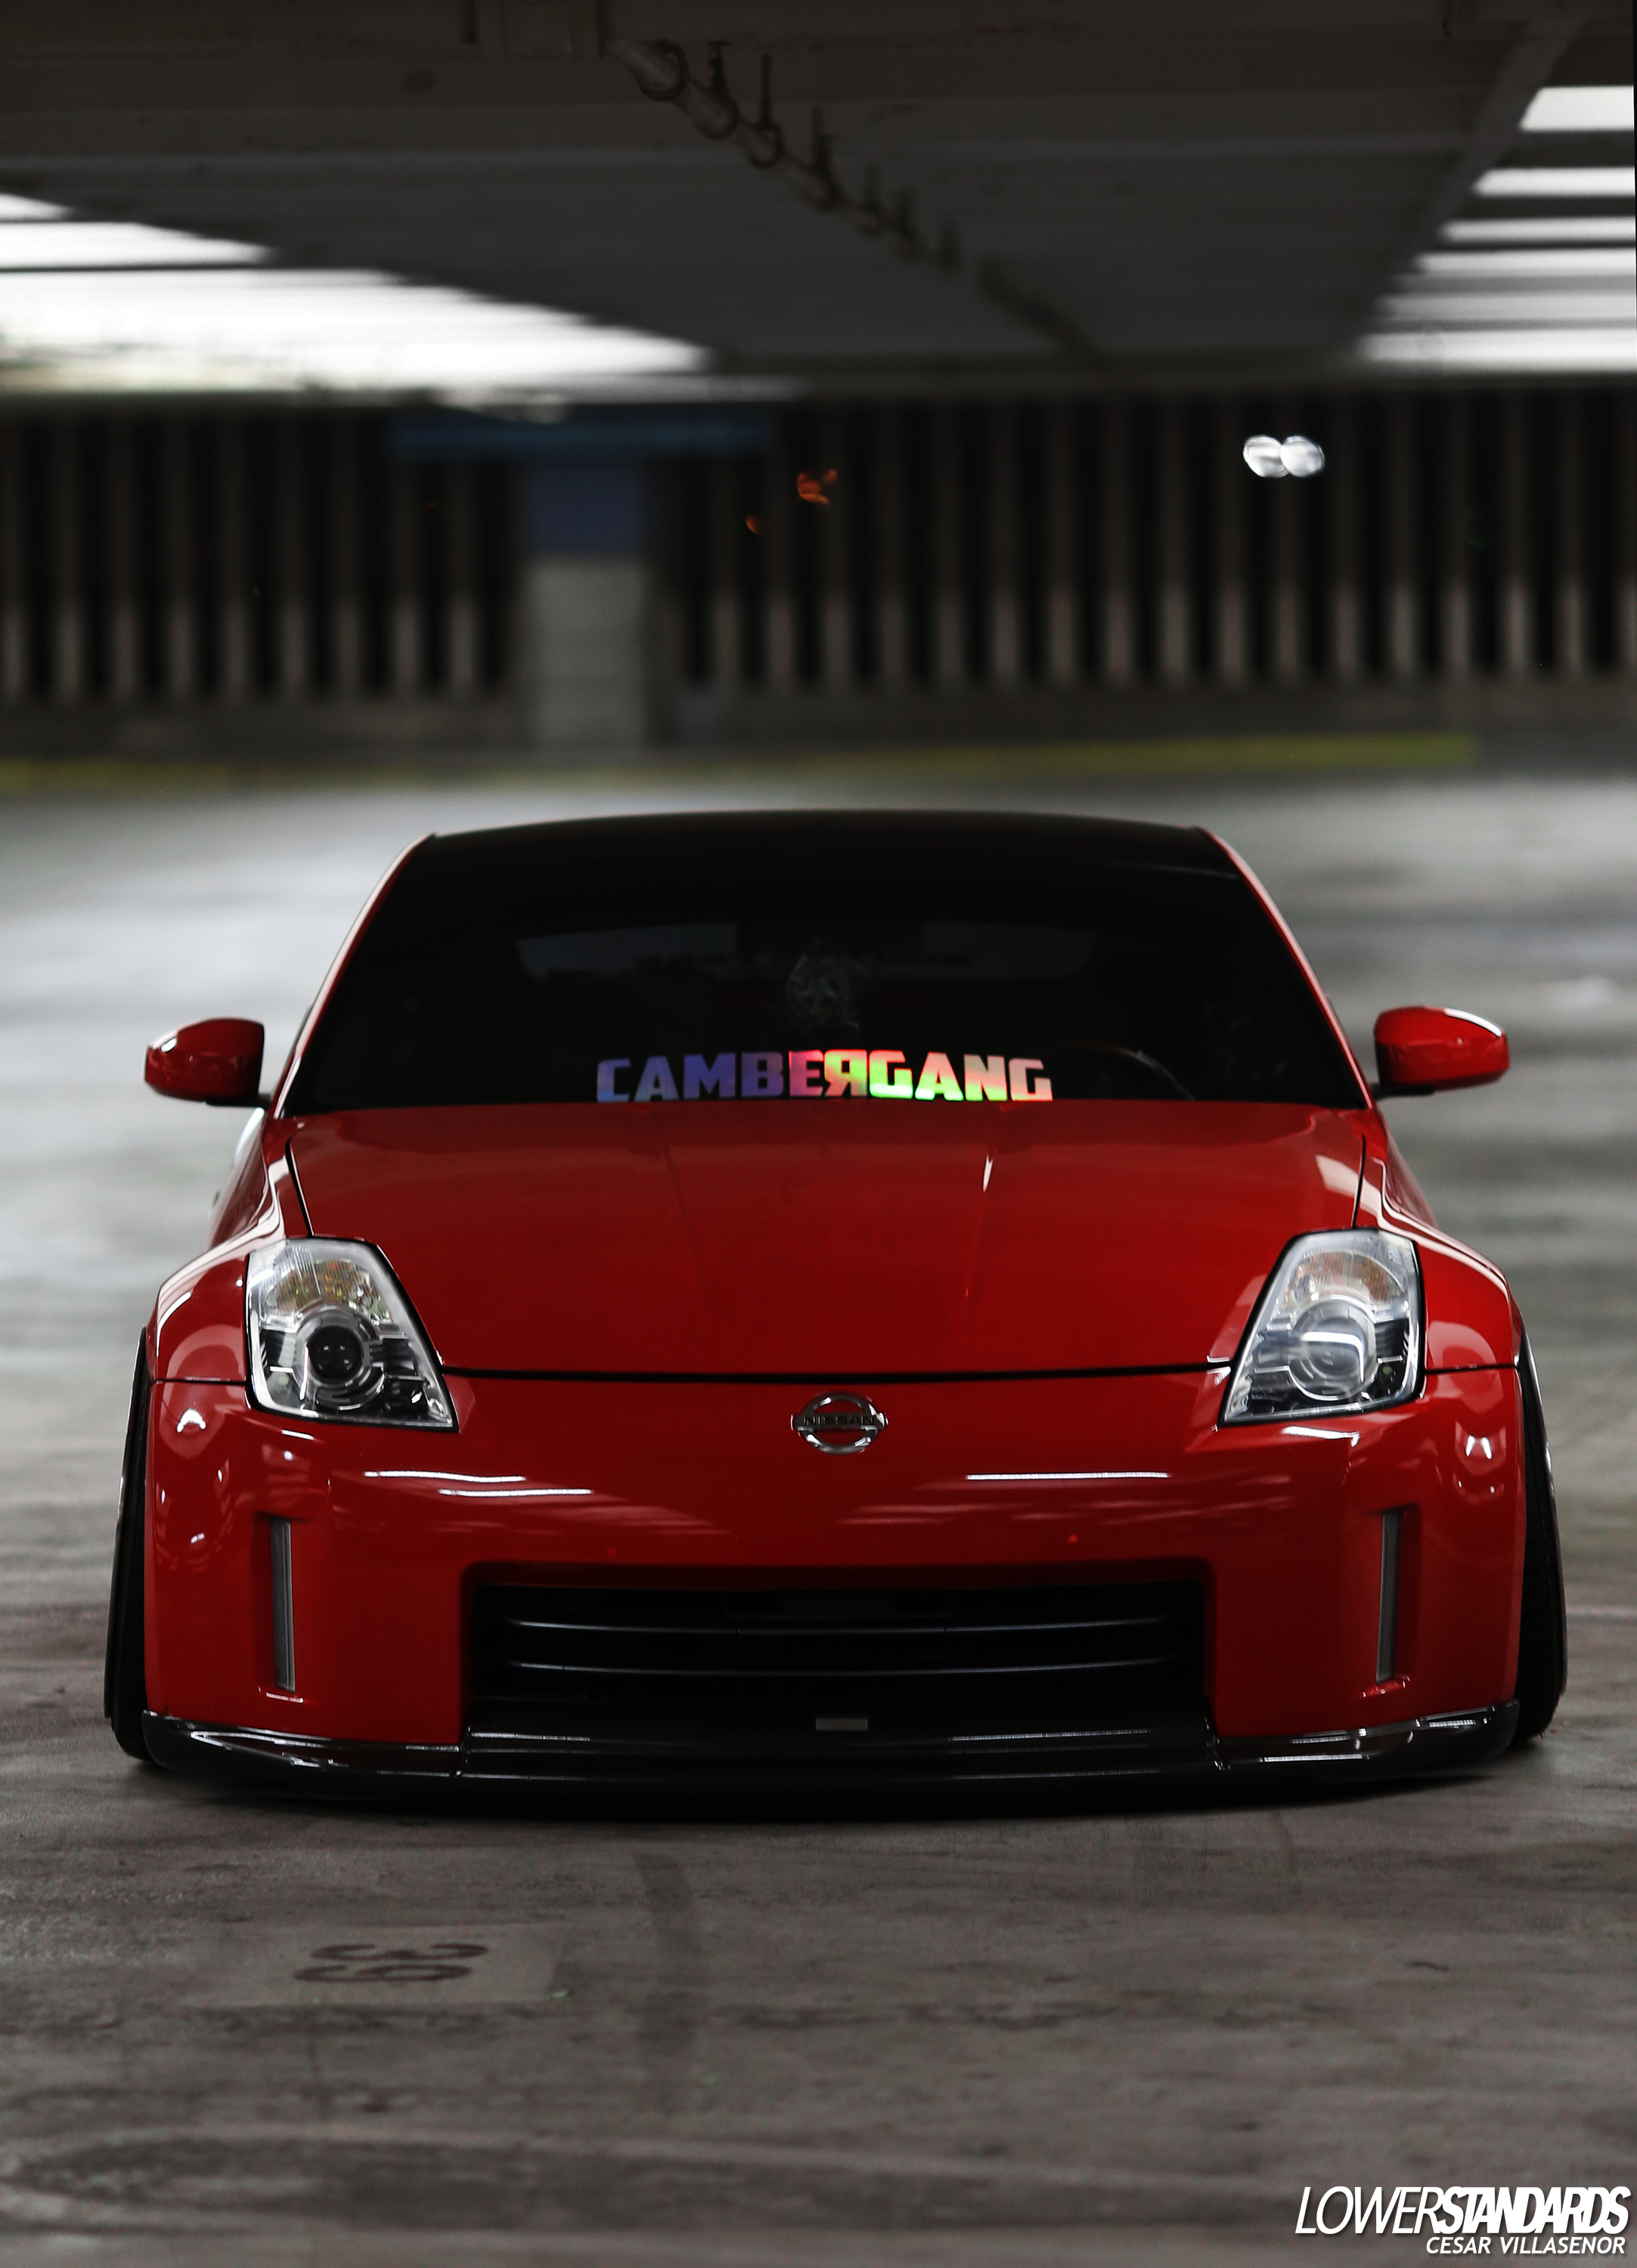 Floor Mats Car >> Edgar's Bagged 2006 350Z - Lower StandardsLower Standards